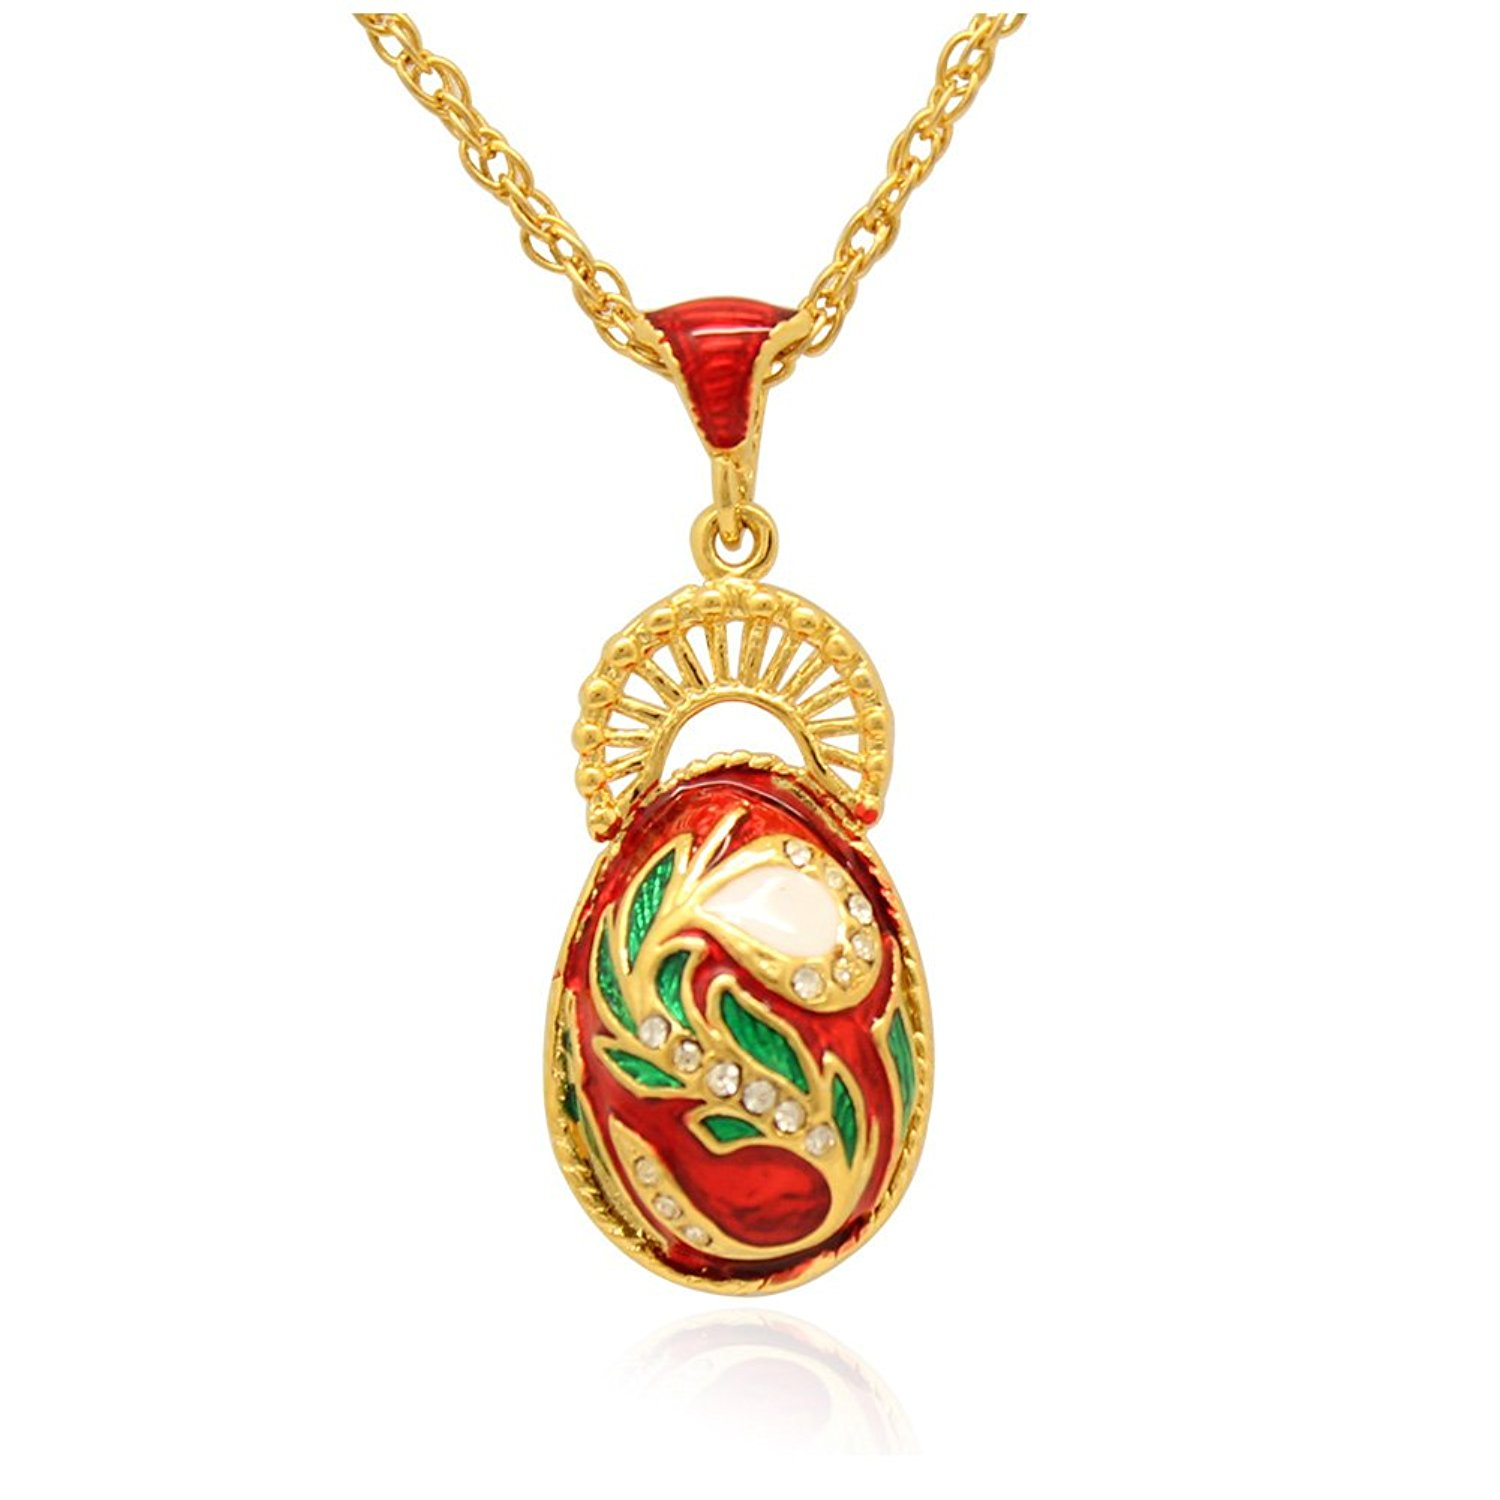 MYD Jewelry Color Enameled Woman Peacock Tail Faberge Egg Pendants Necklaces